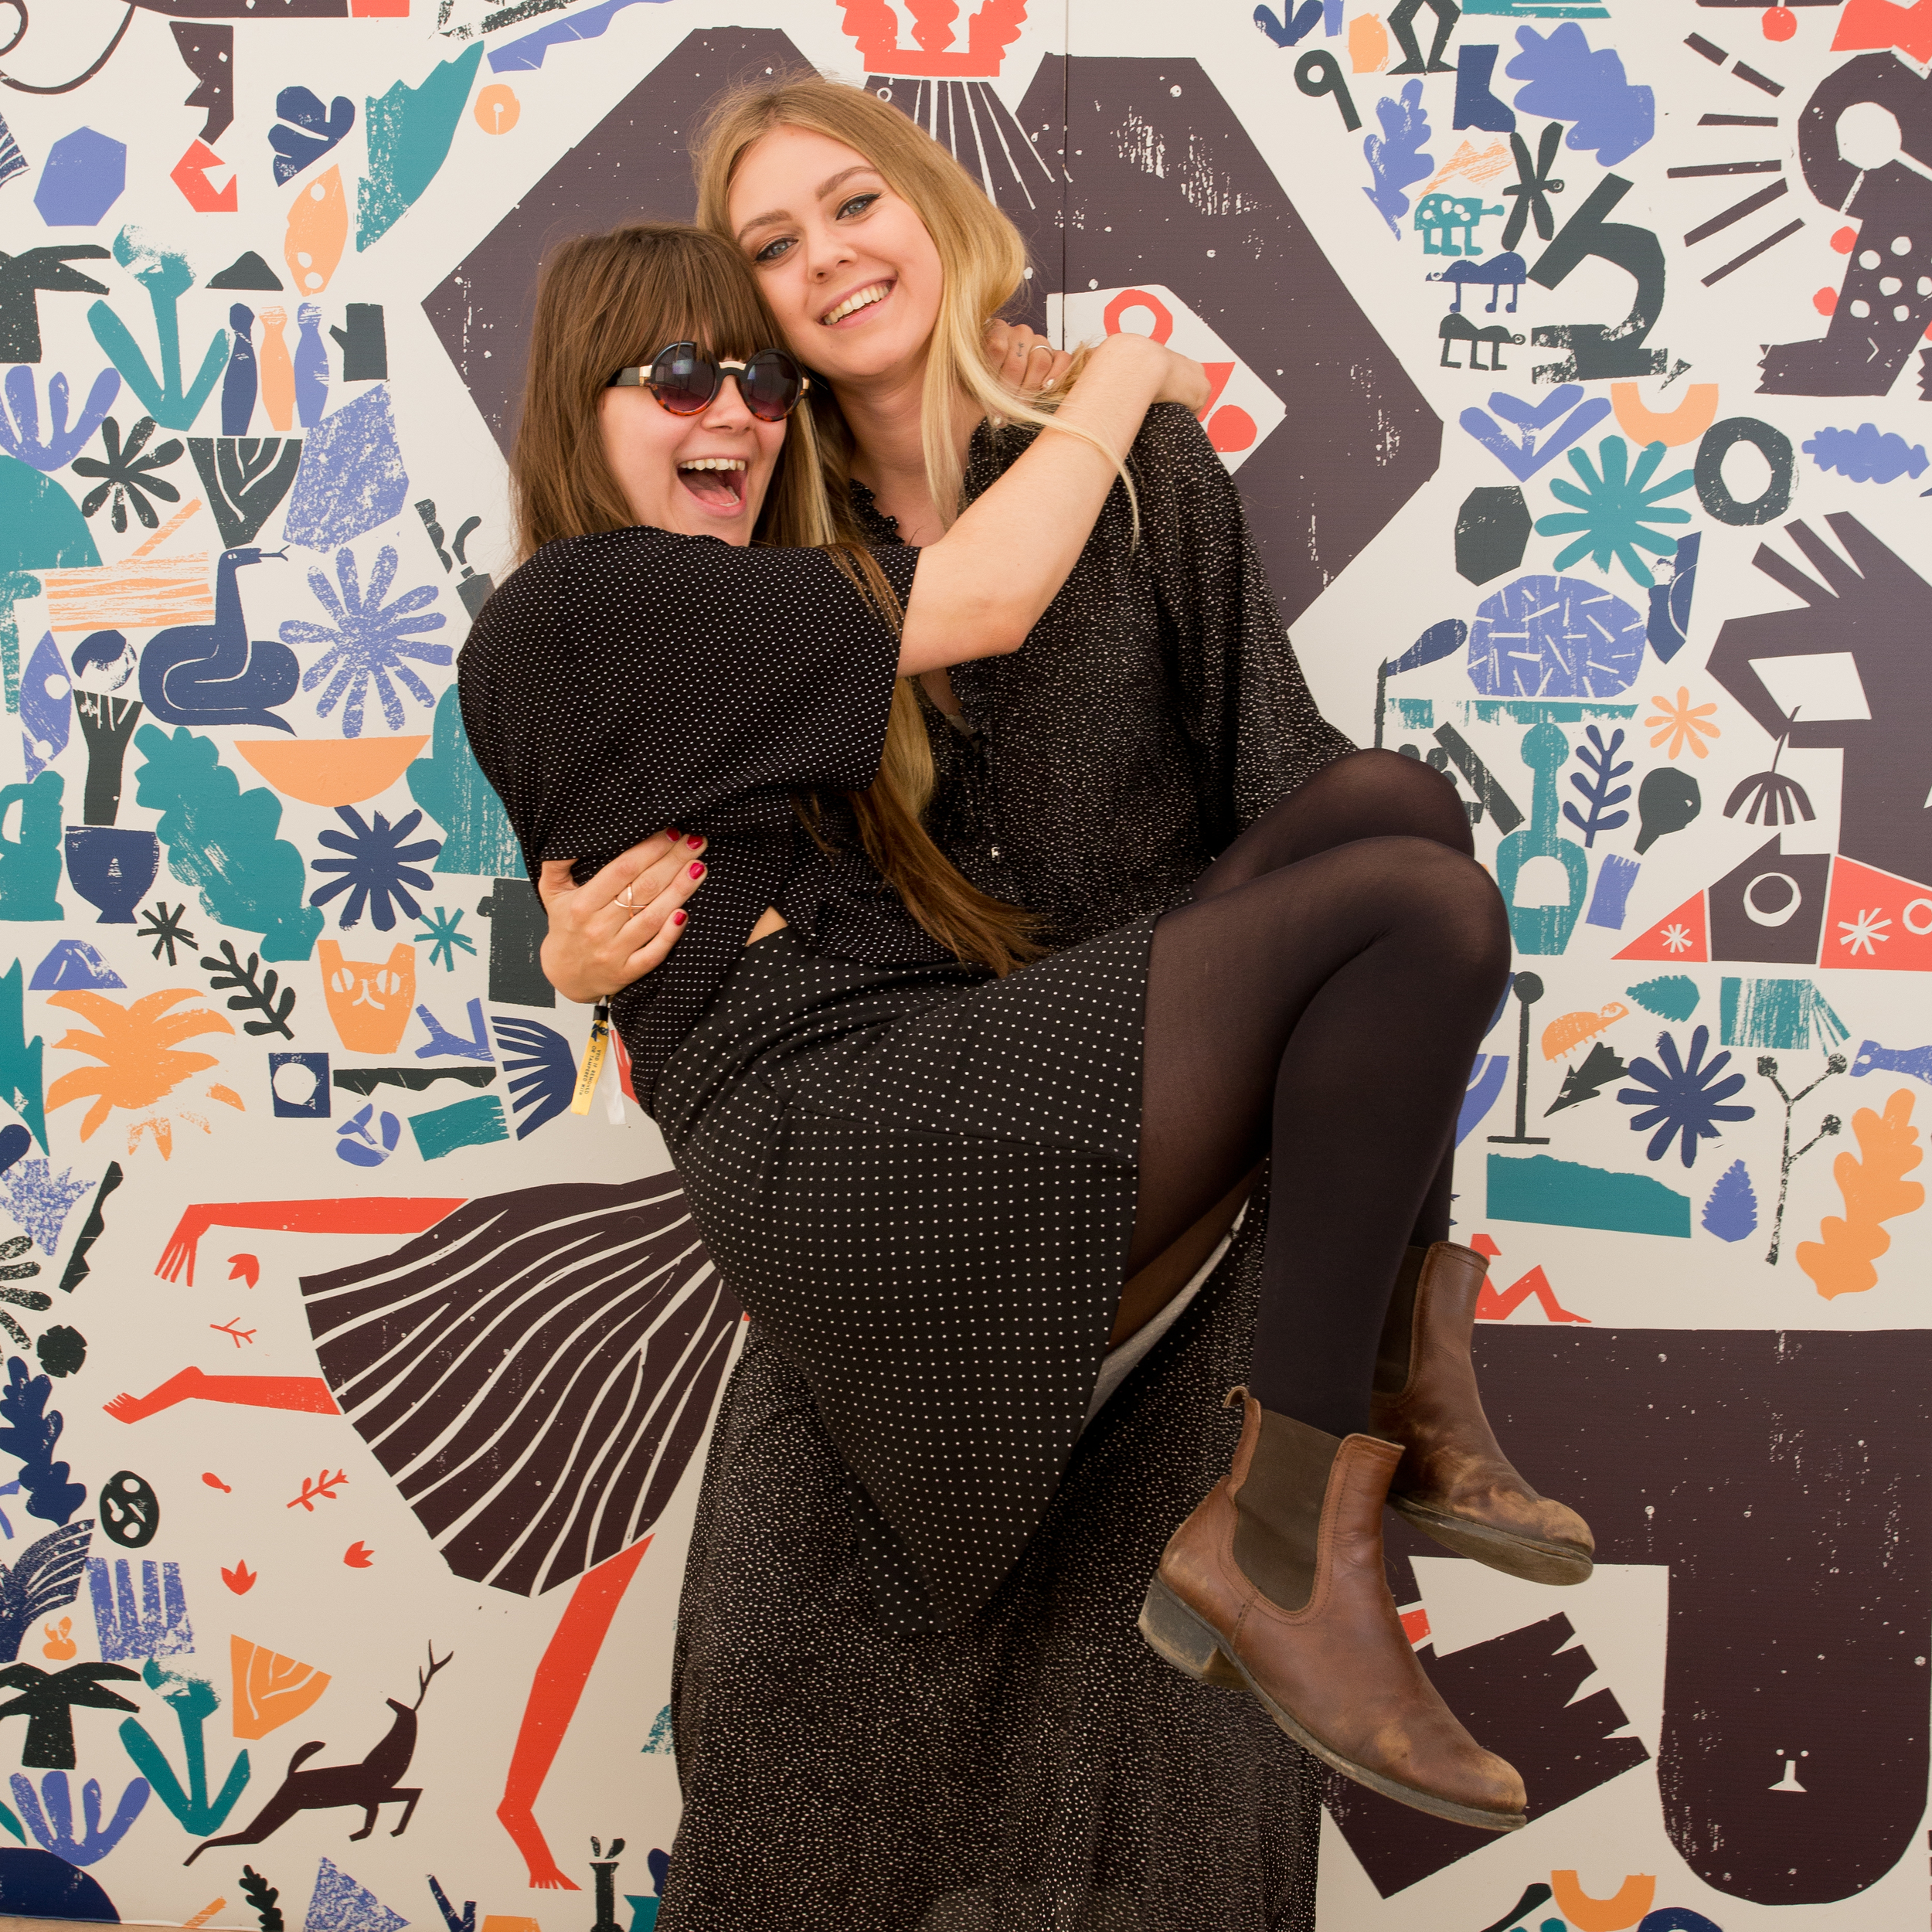 First Aid Kit backstage at Green Man Festival